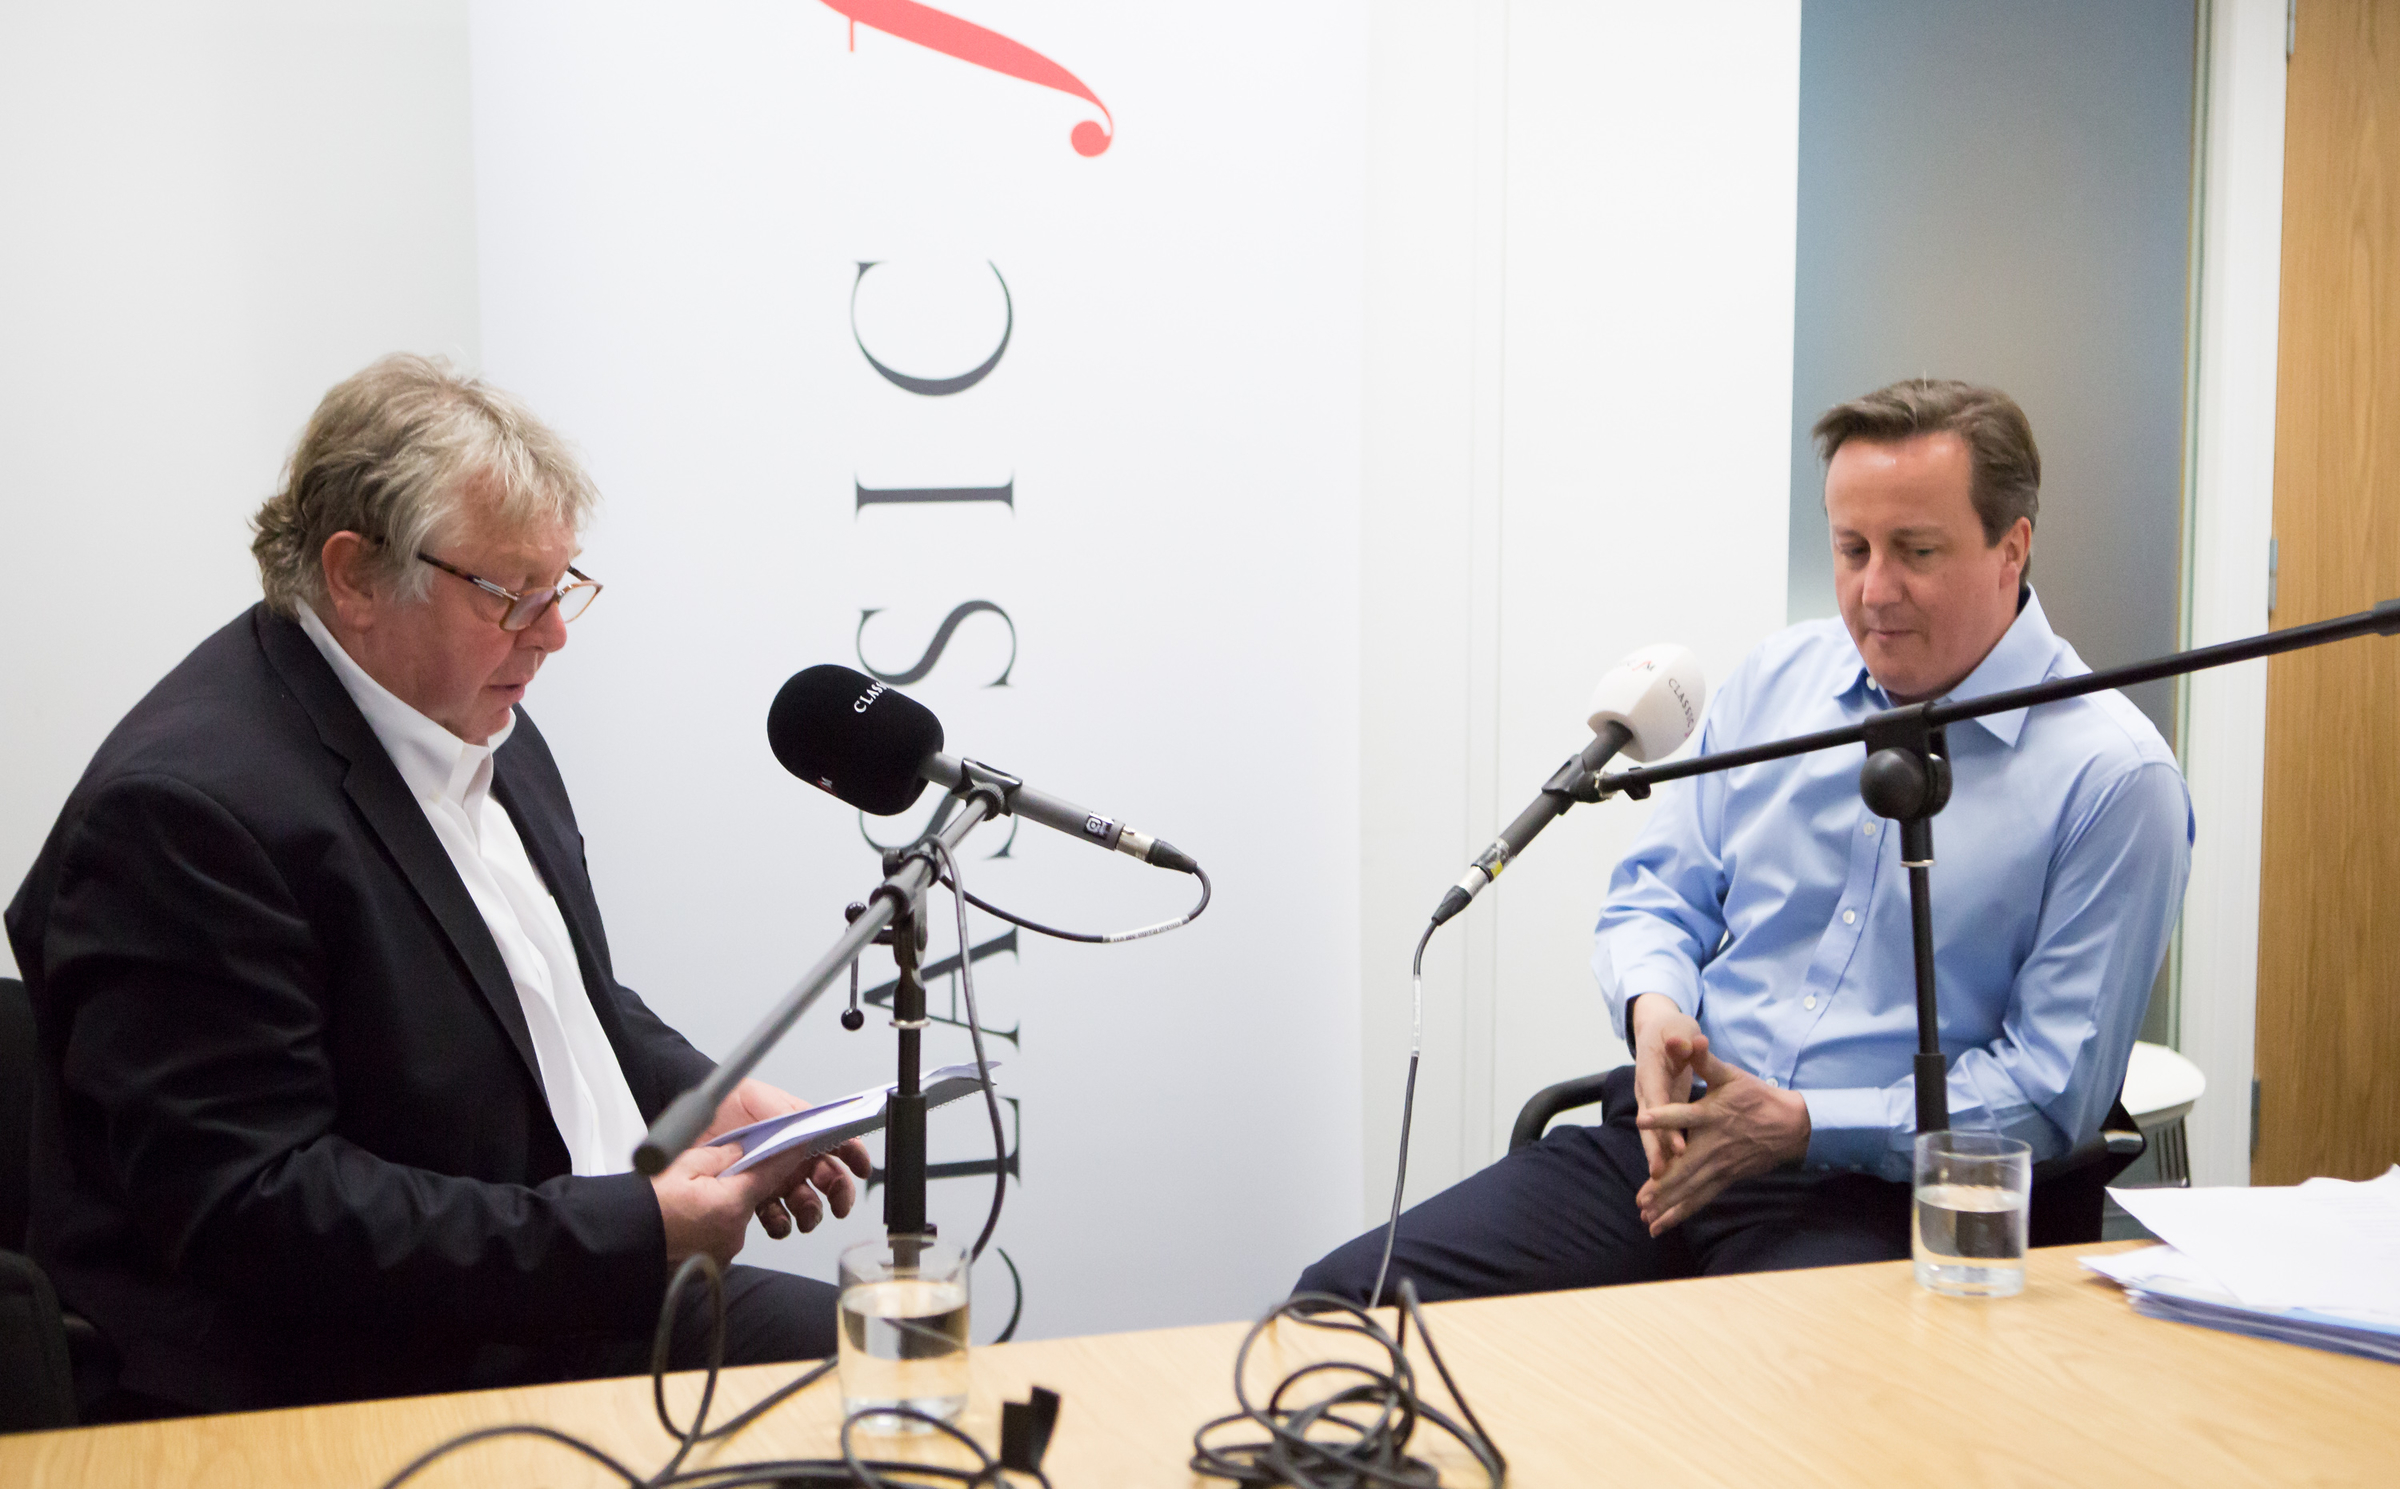 David Cameron and Nick Ferrari